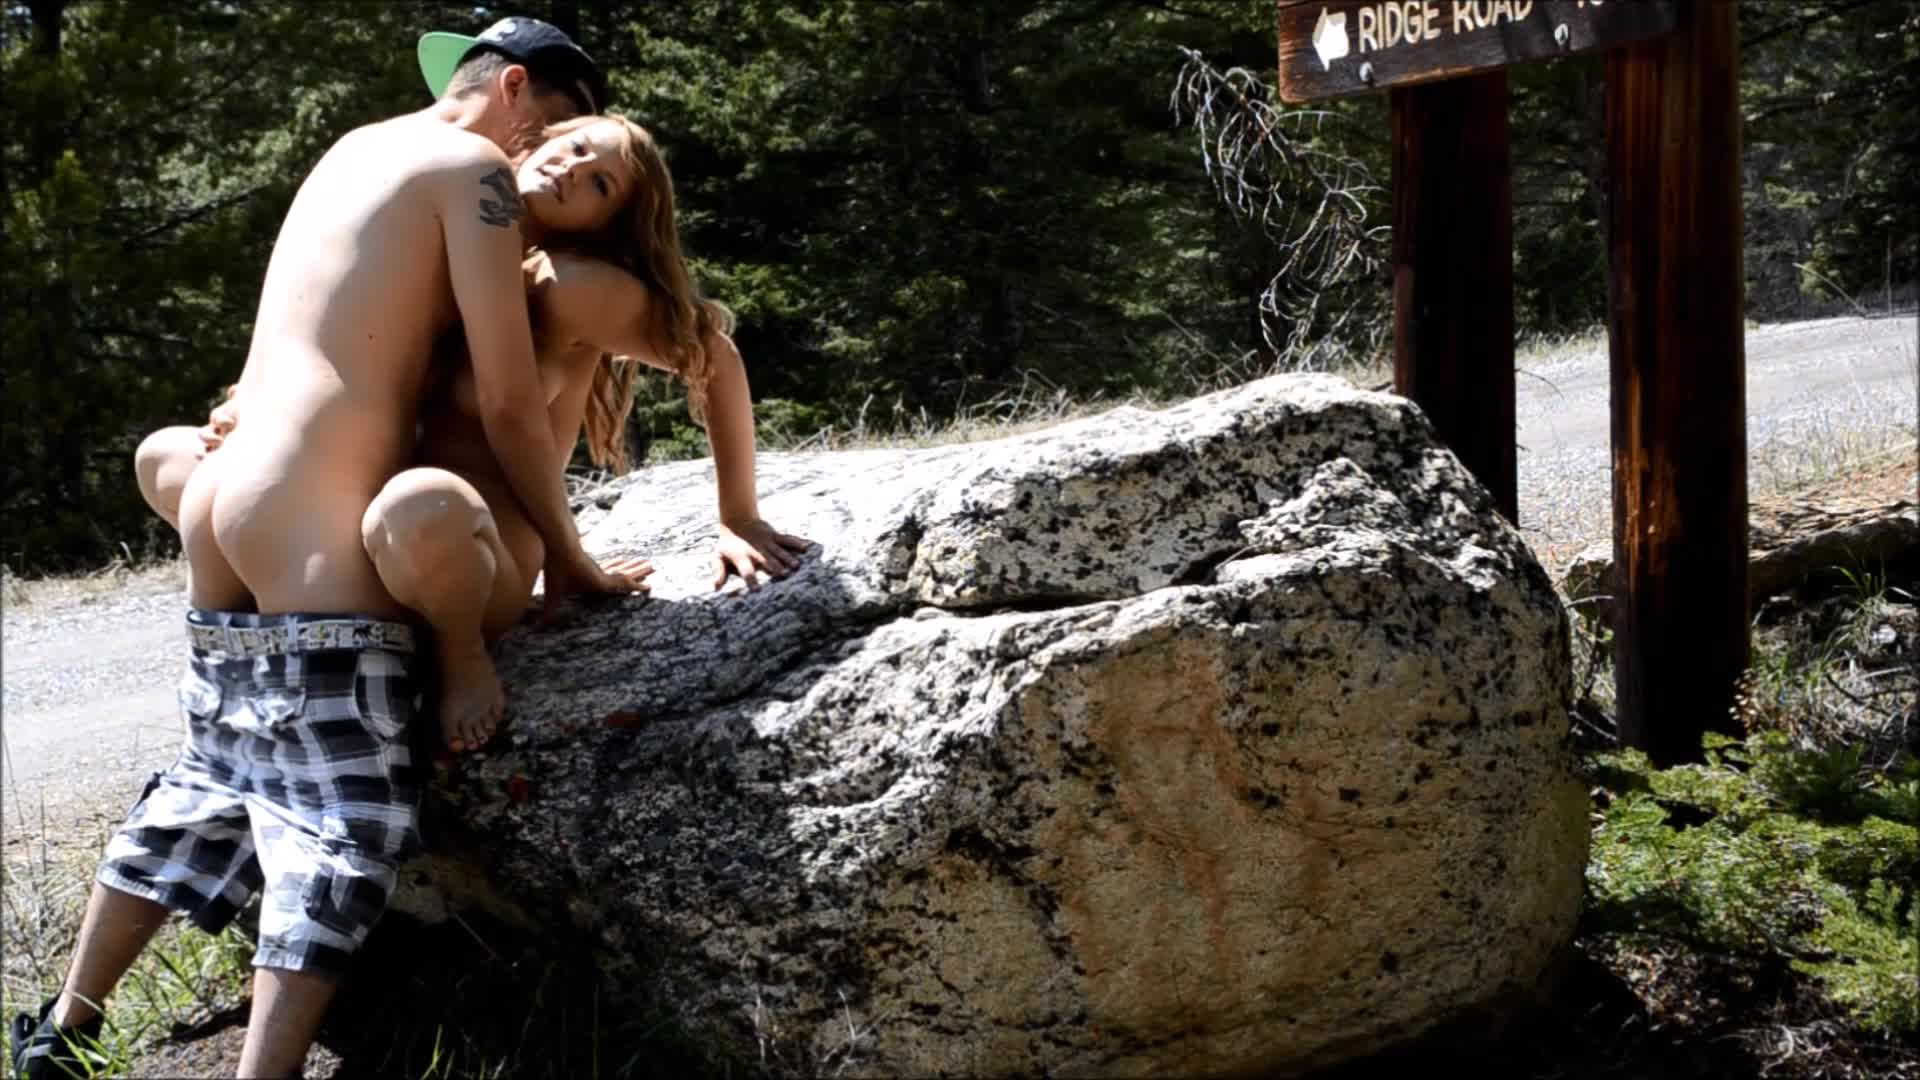 """Mya Lane"" (Outdoors, Outdoor Public Blowjobs, Public Outdoor, Exhibitionism, Public Nudity) Getting Fucked in Nature - ManyVids Production"